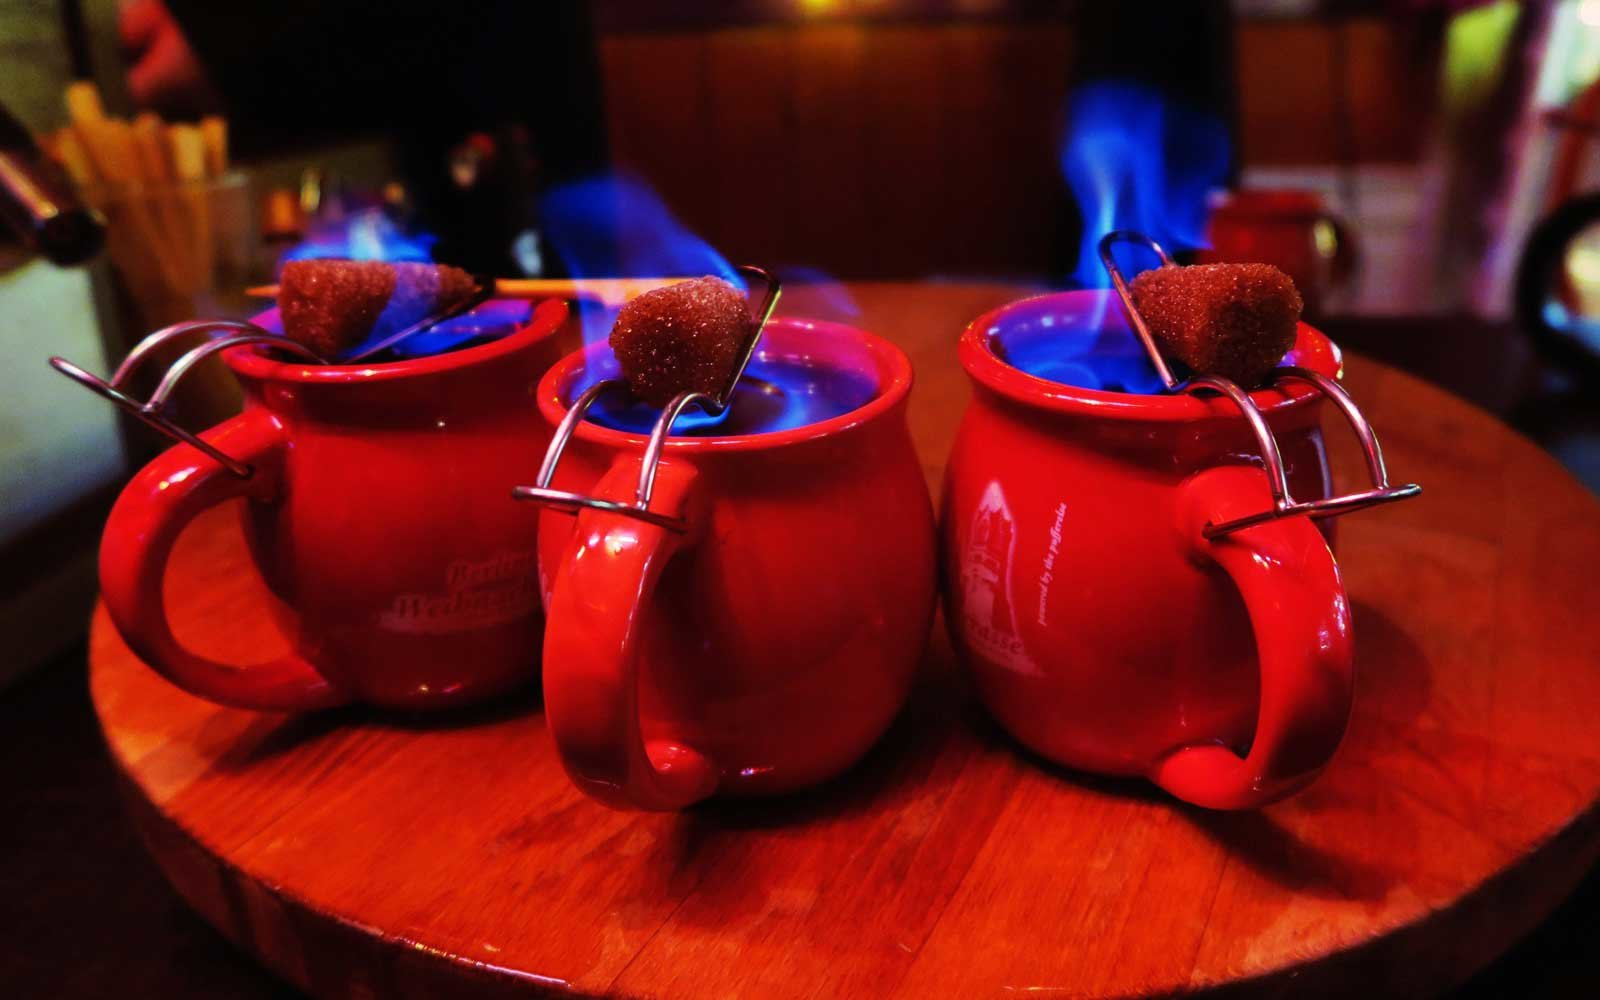 This flaming punch is made by soaking sugarloaf and dripping it into mulled wine.